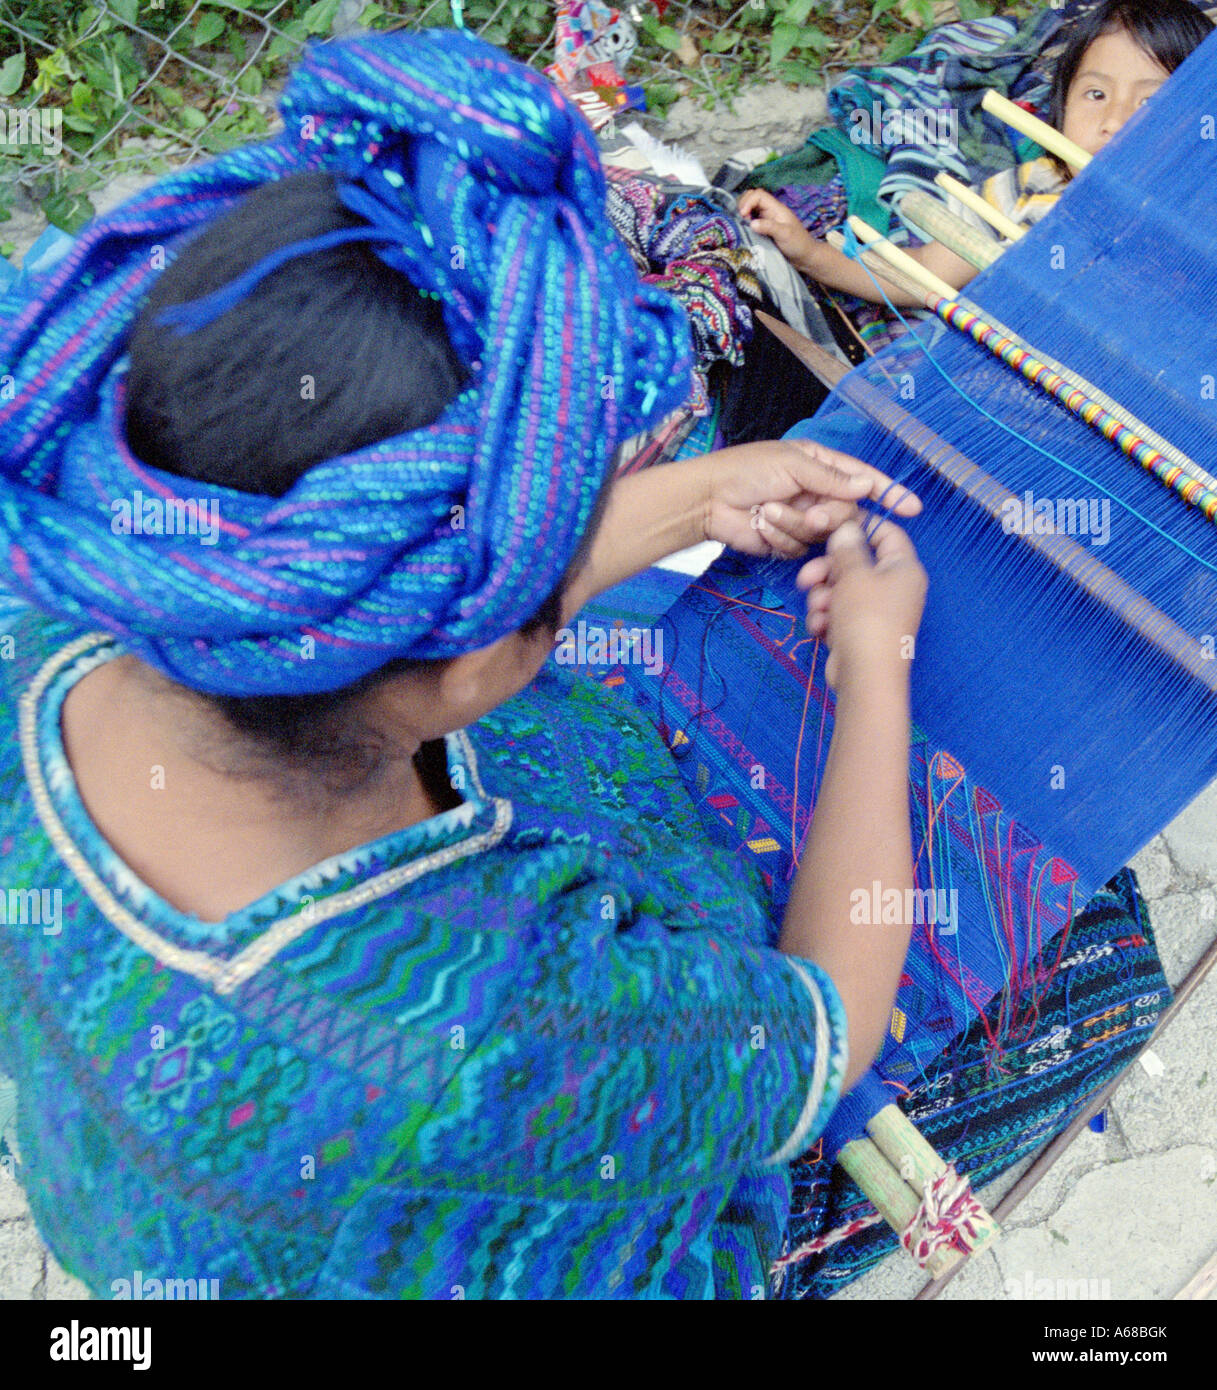 Woman Weaving on a hand loom, Santiago, Atitlan, Guatemala - Stock Image